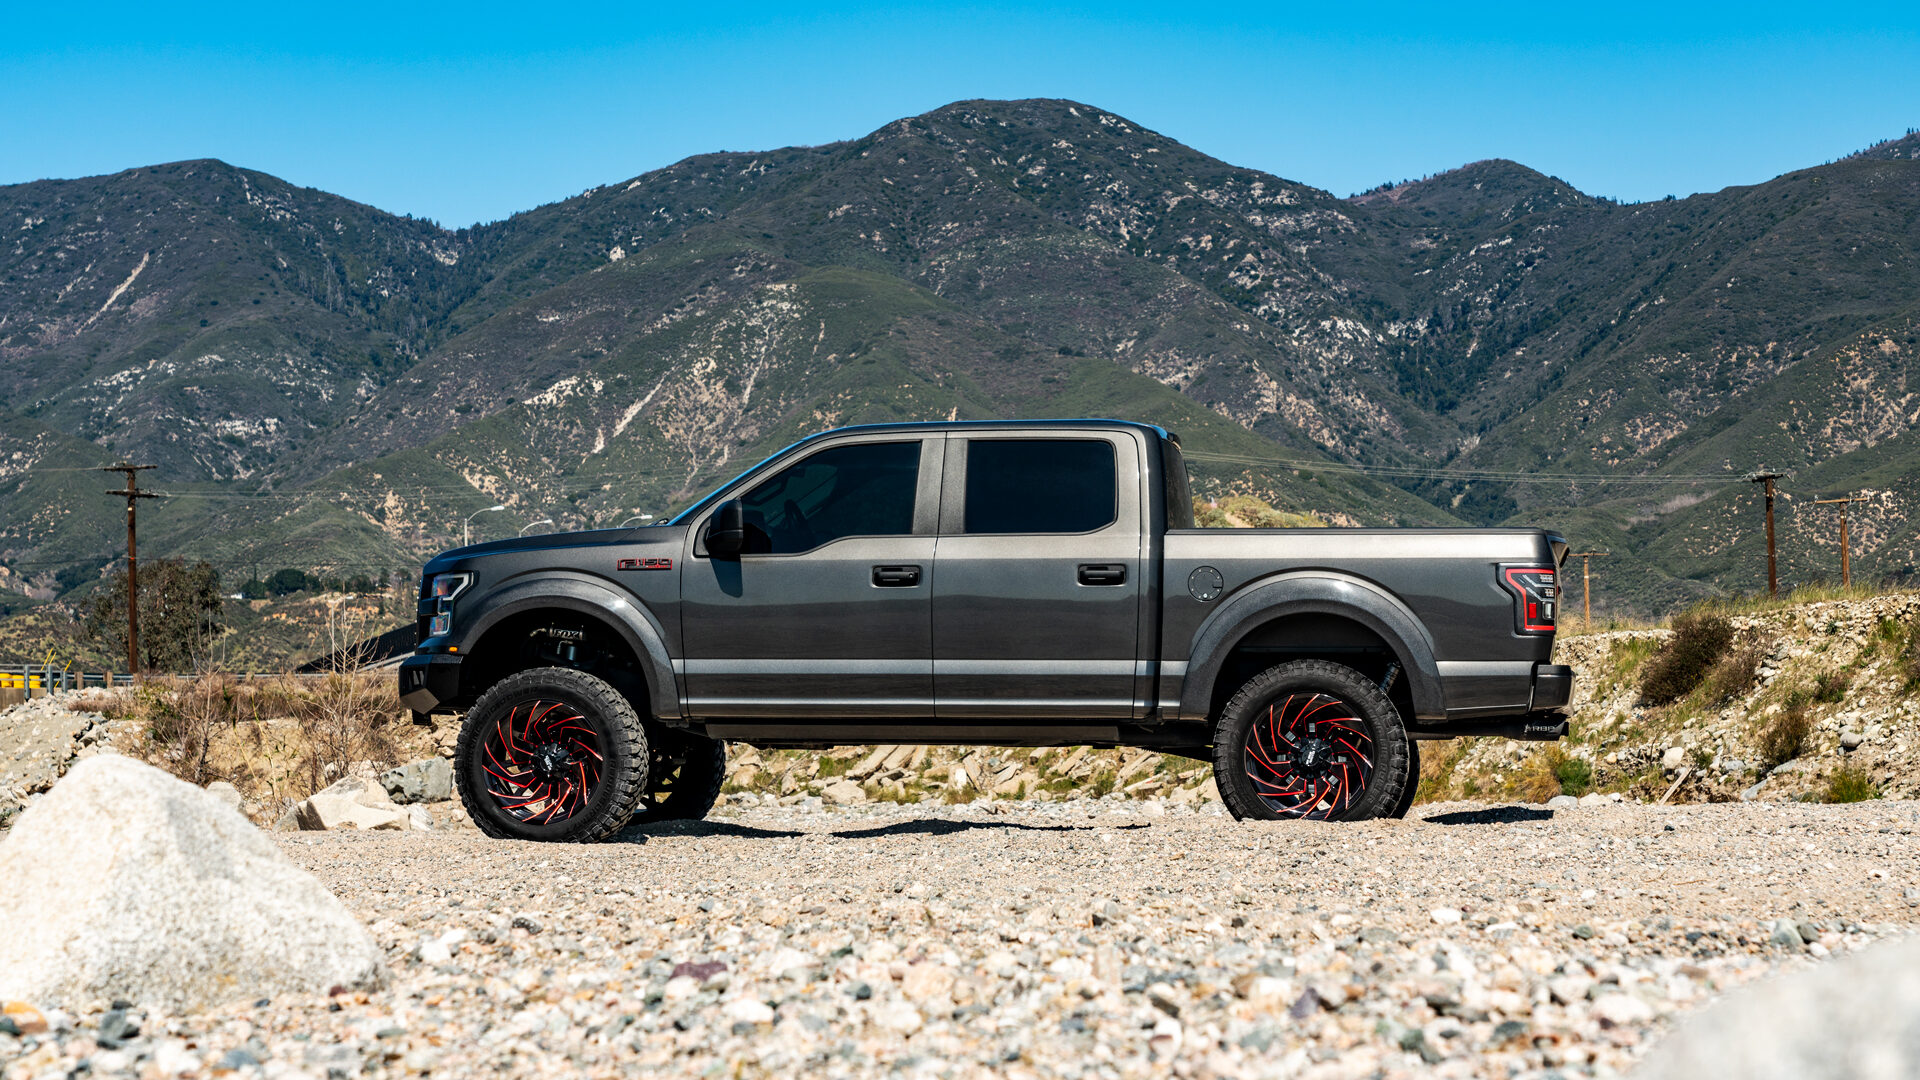 M24 Off-Road Monster Wheels 22x12 | Ford F150